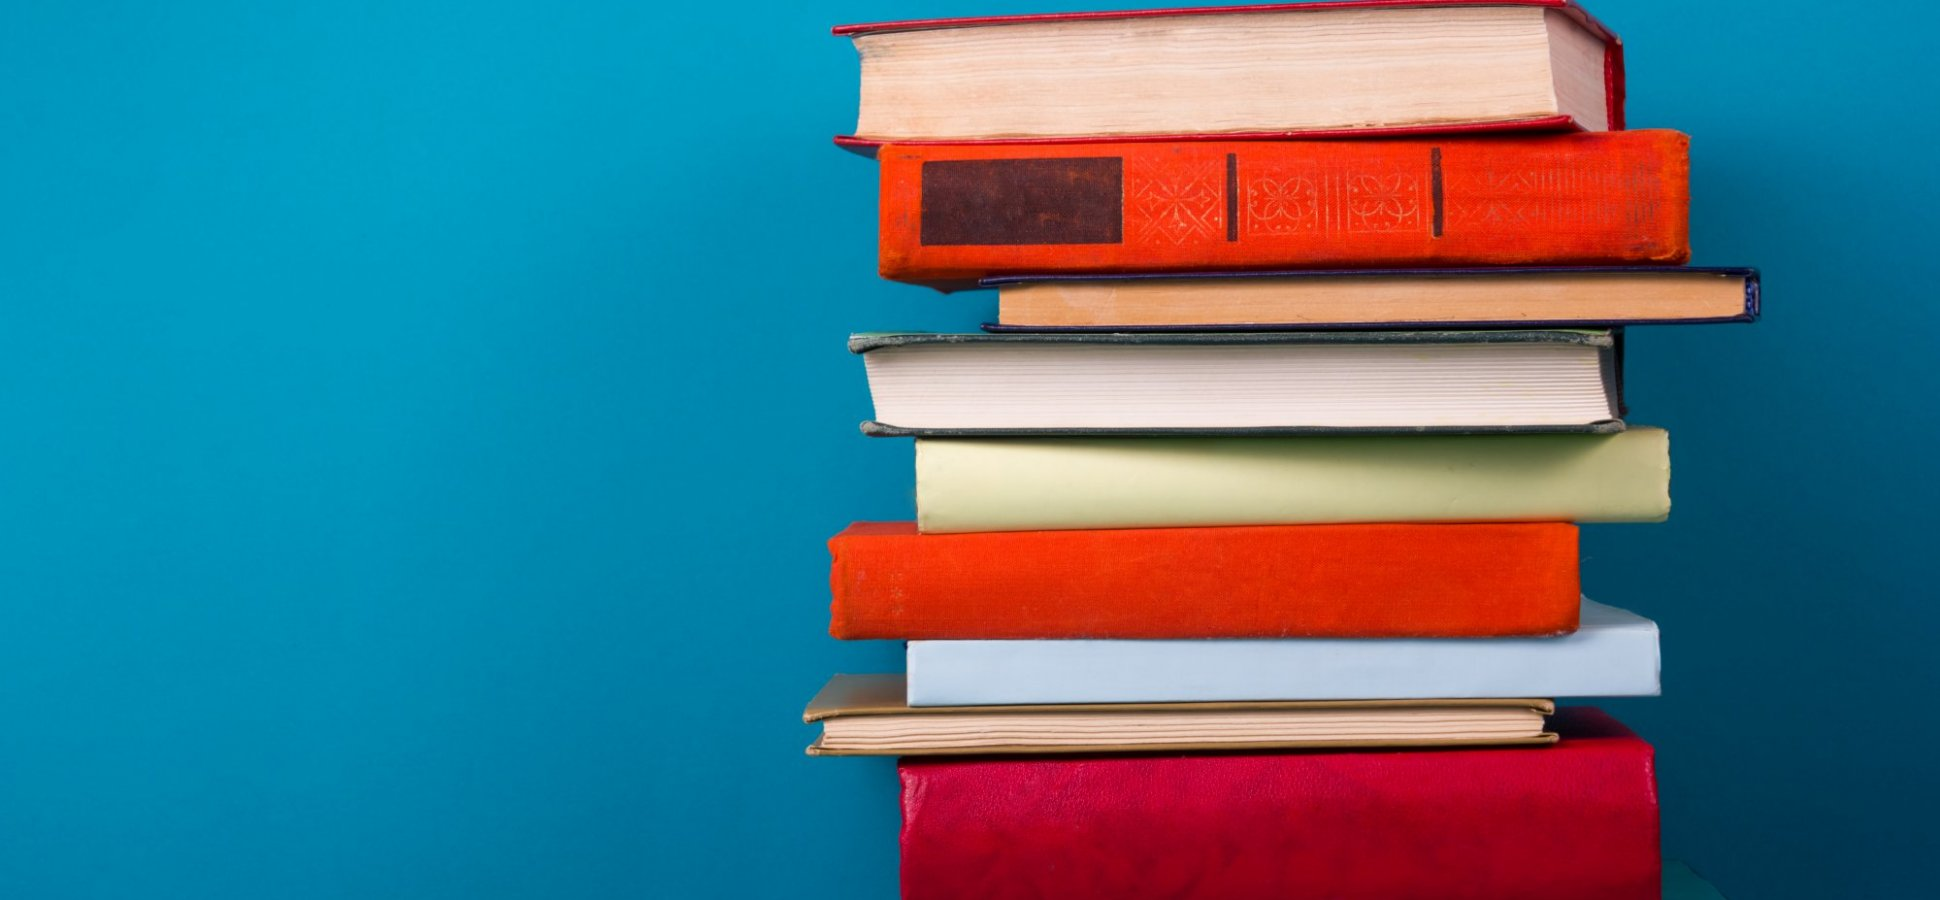 Read This List of Books to Succeed in Business and Life